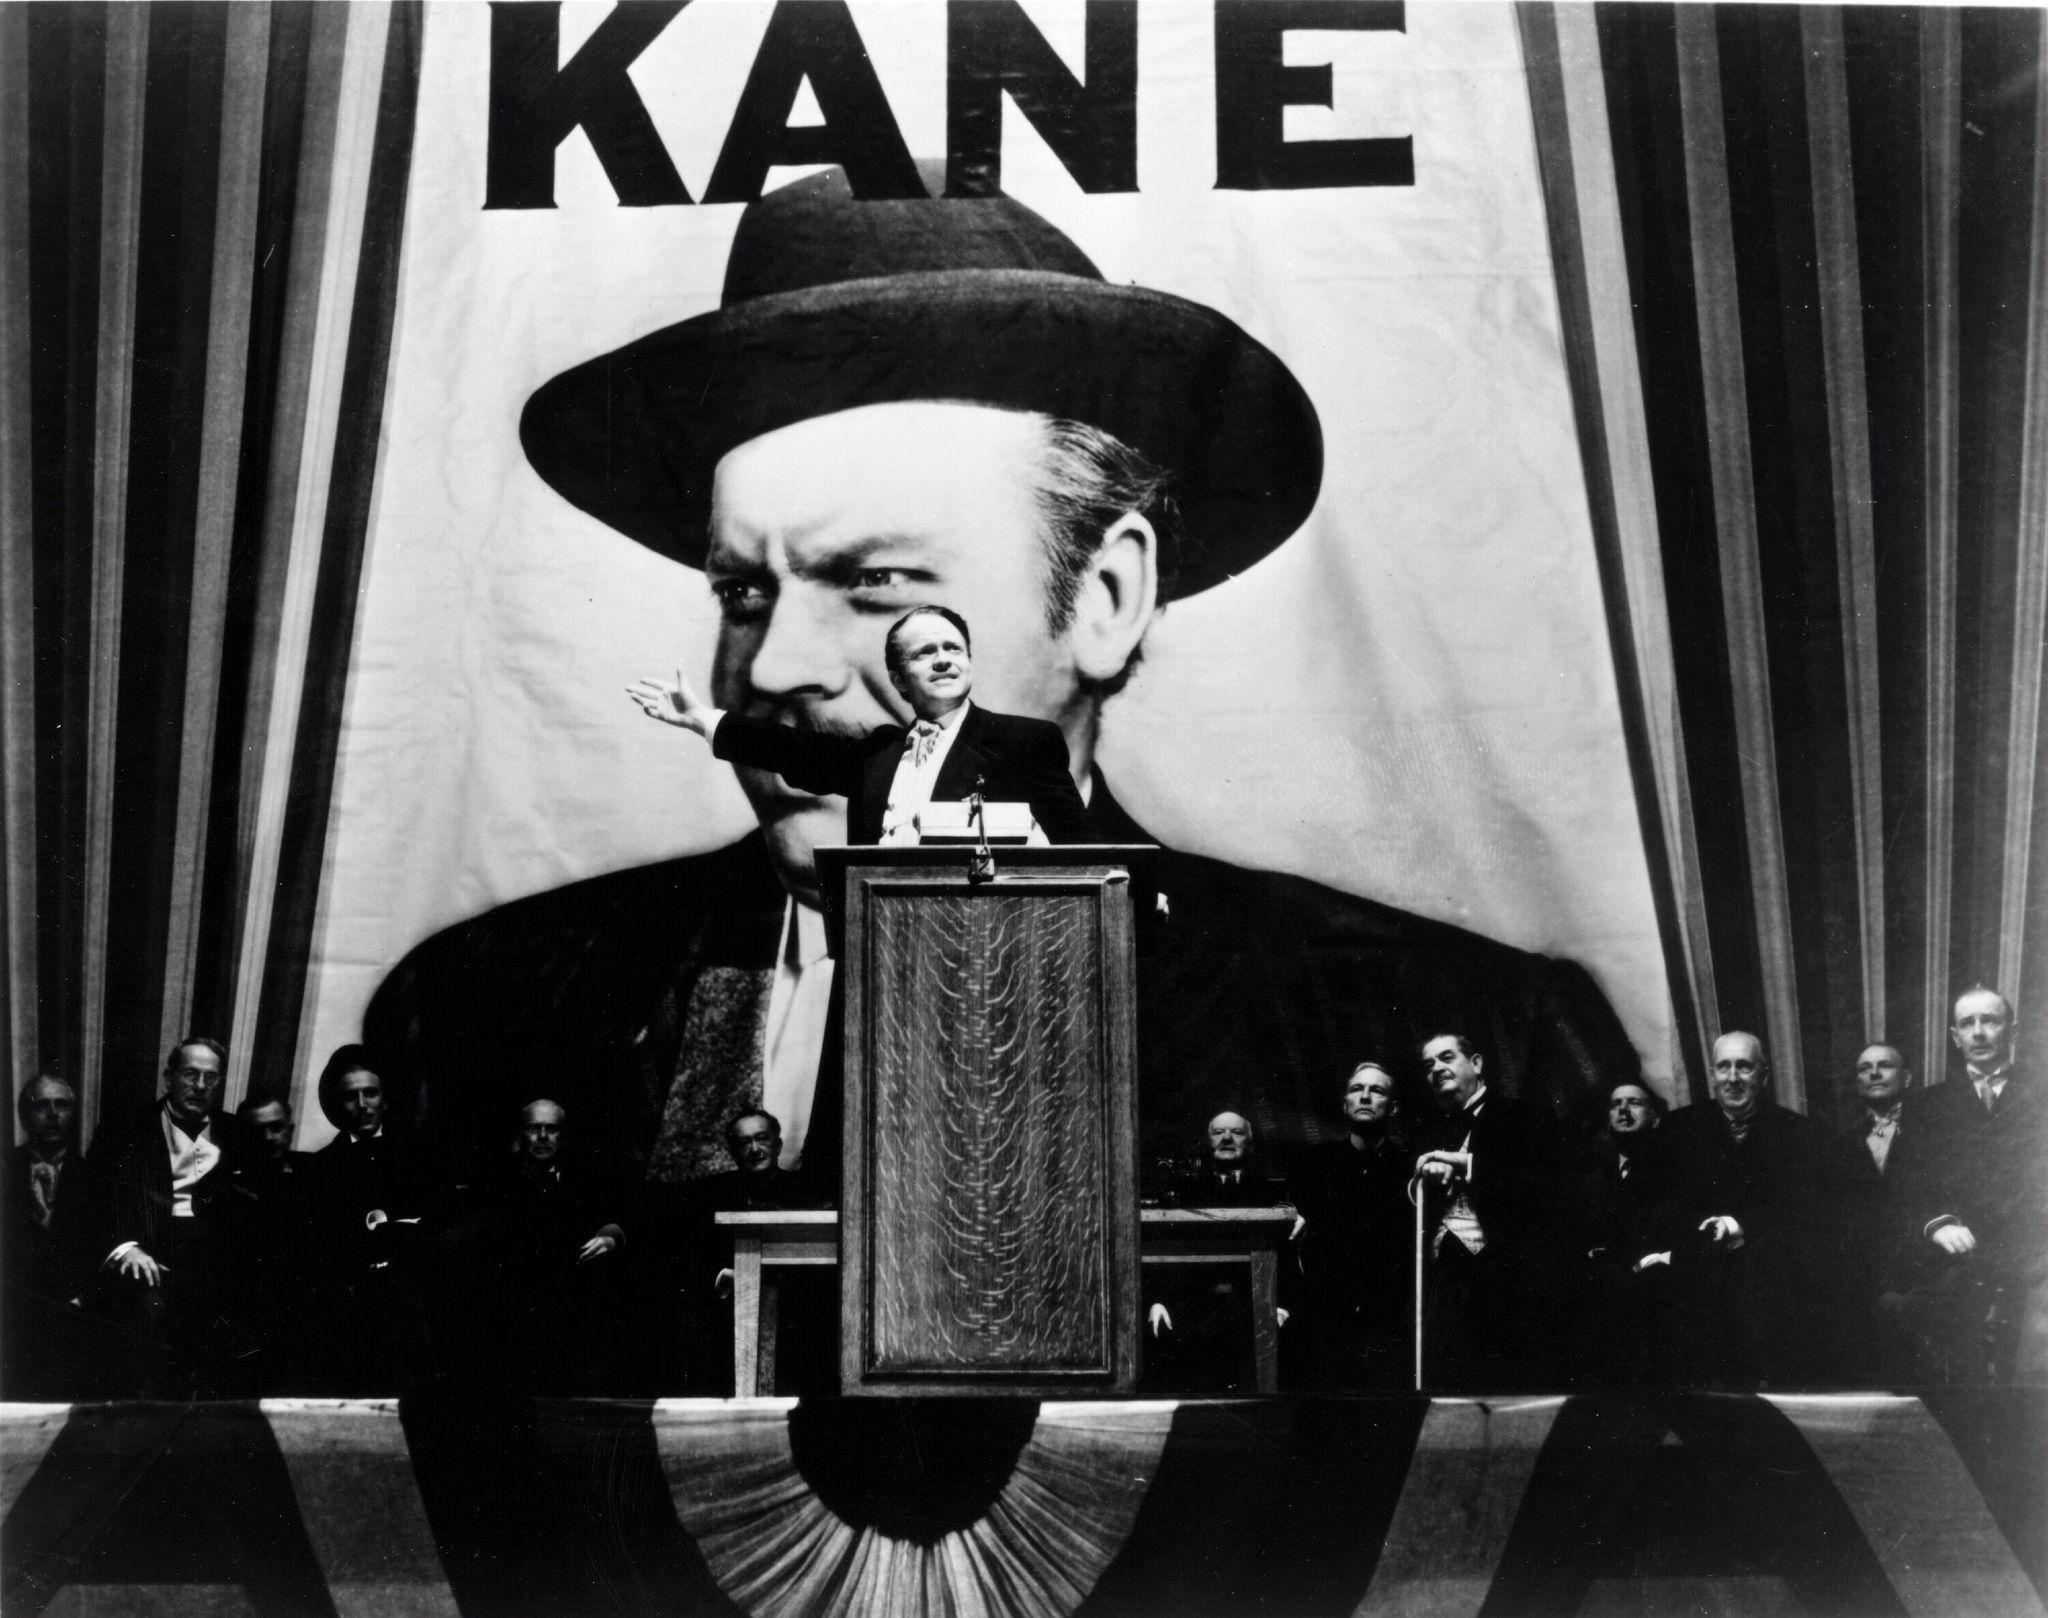 http://lounge.obviousmag.org/isso_compensa/2015/05/08/orson-welles_kane.jpg